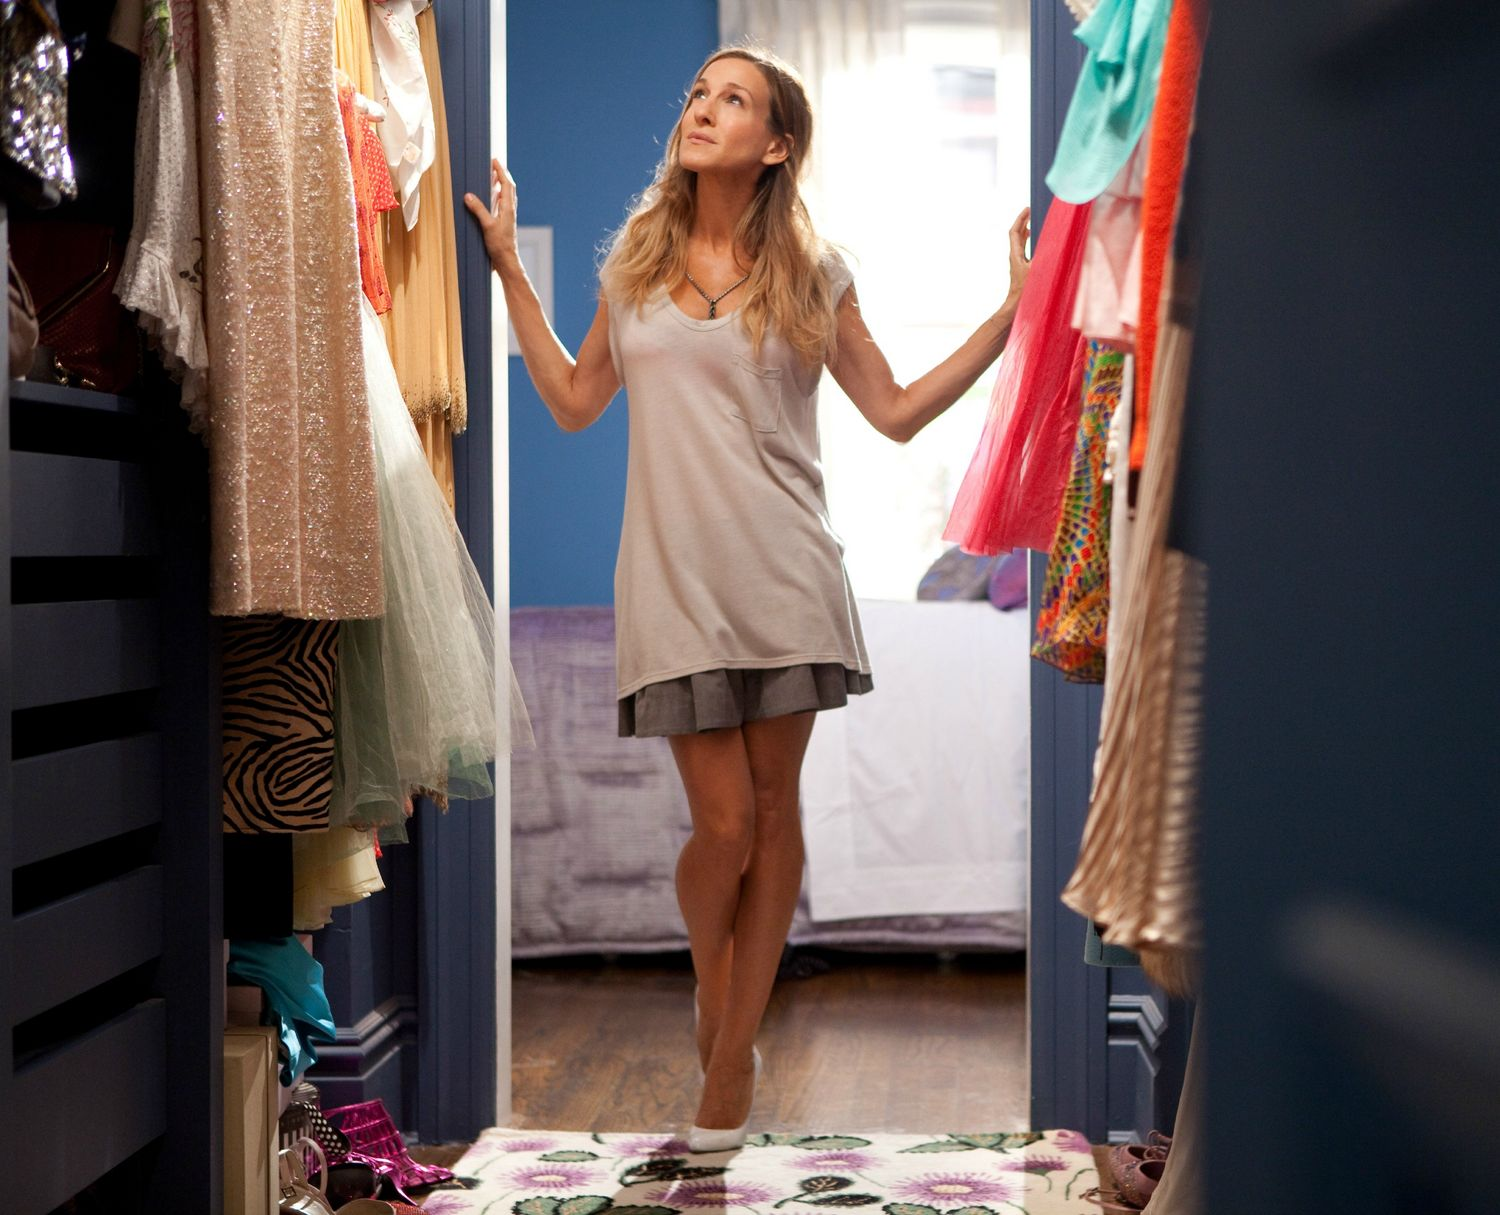 Still of Carrie Bradshaw from HBO's Sex and the City